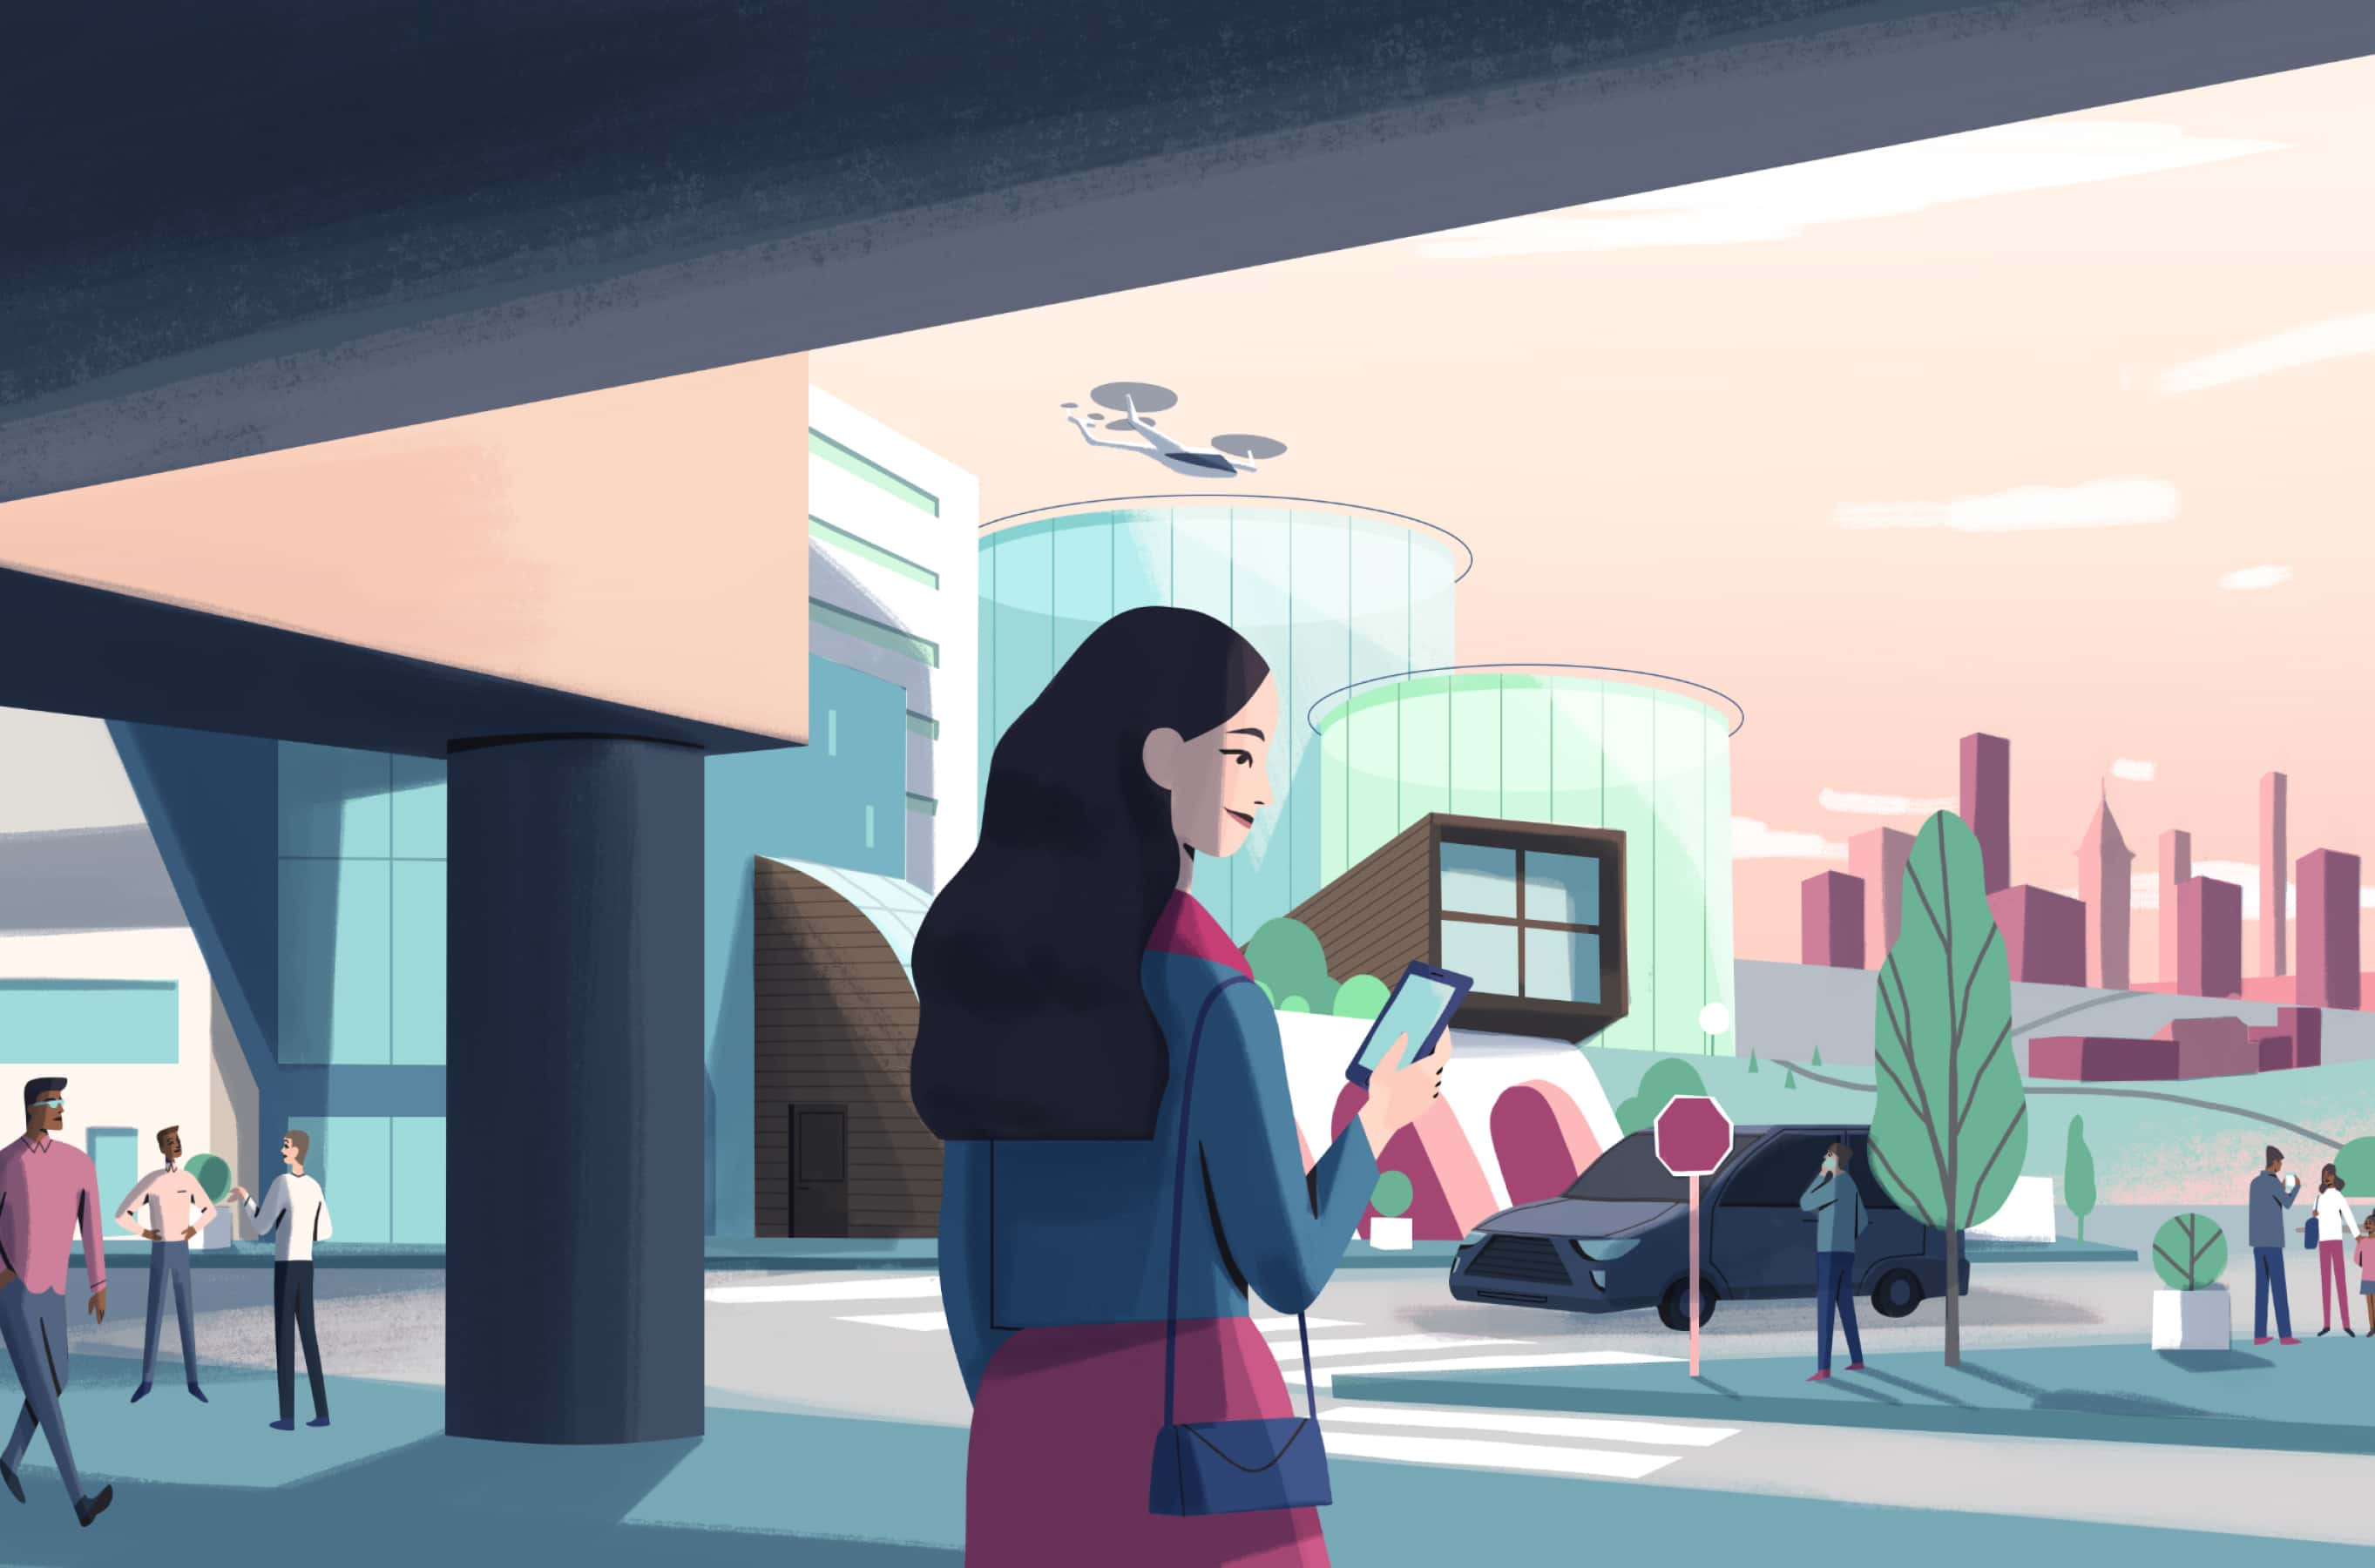 Illustration of a woman looking over an urban landscape with unmanned aircraft landing on helipads.